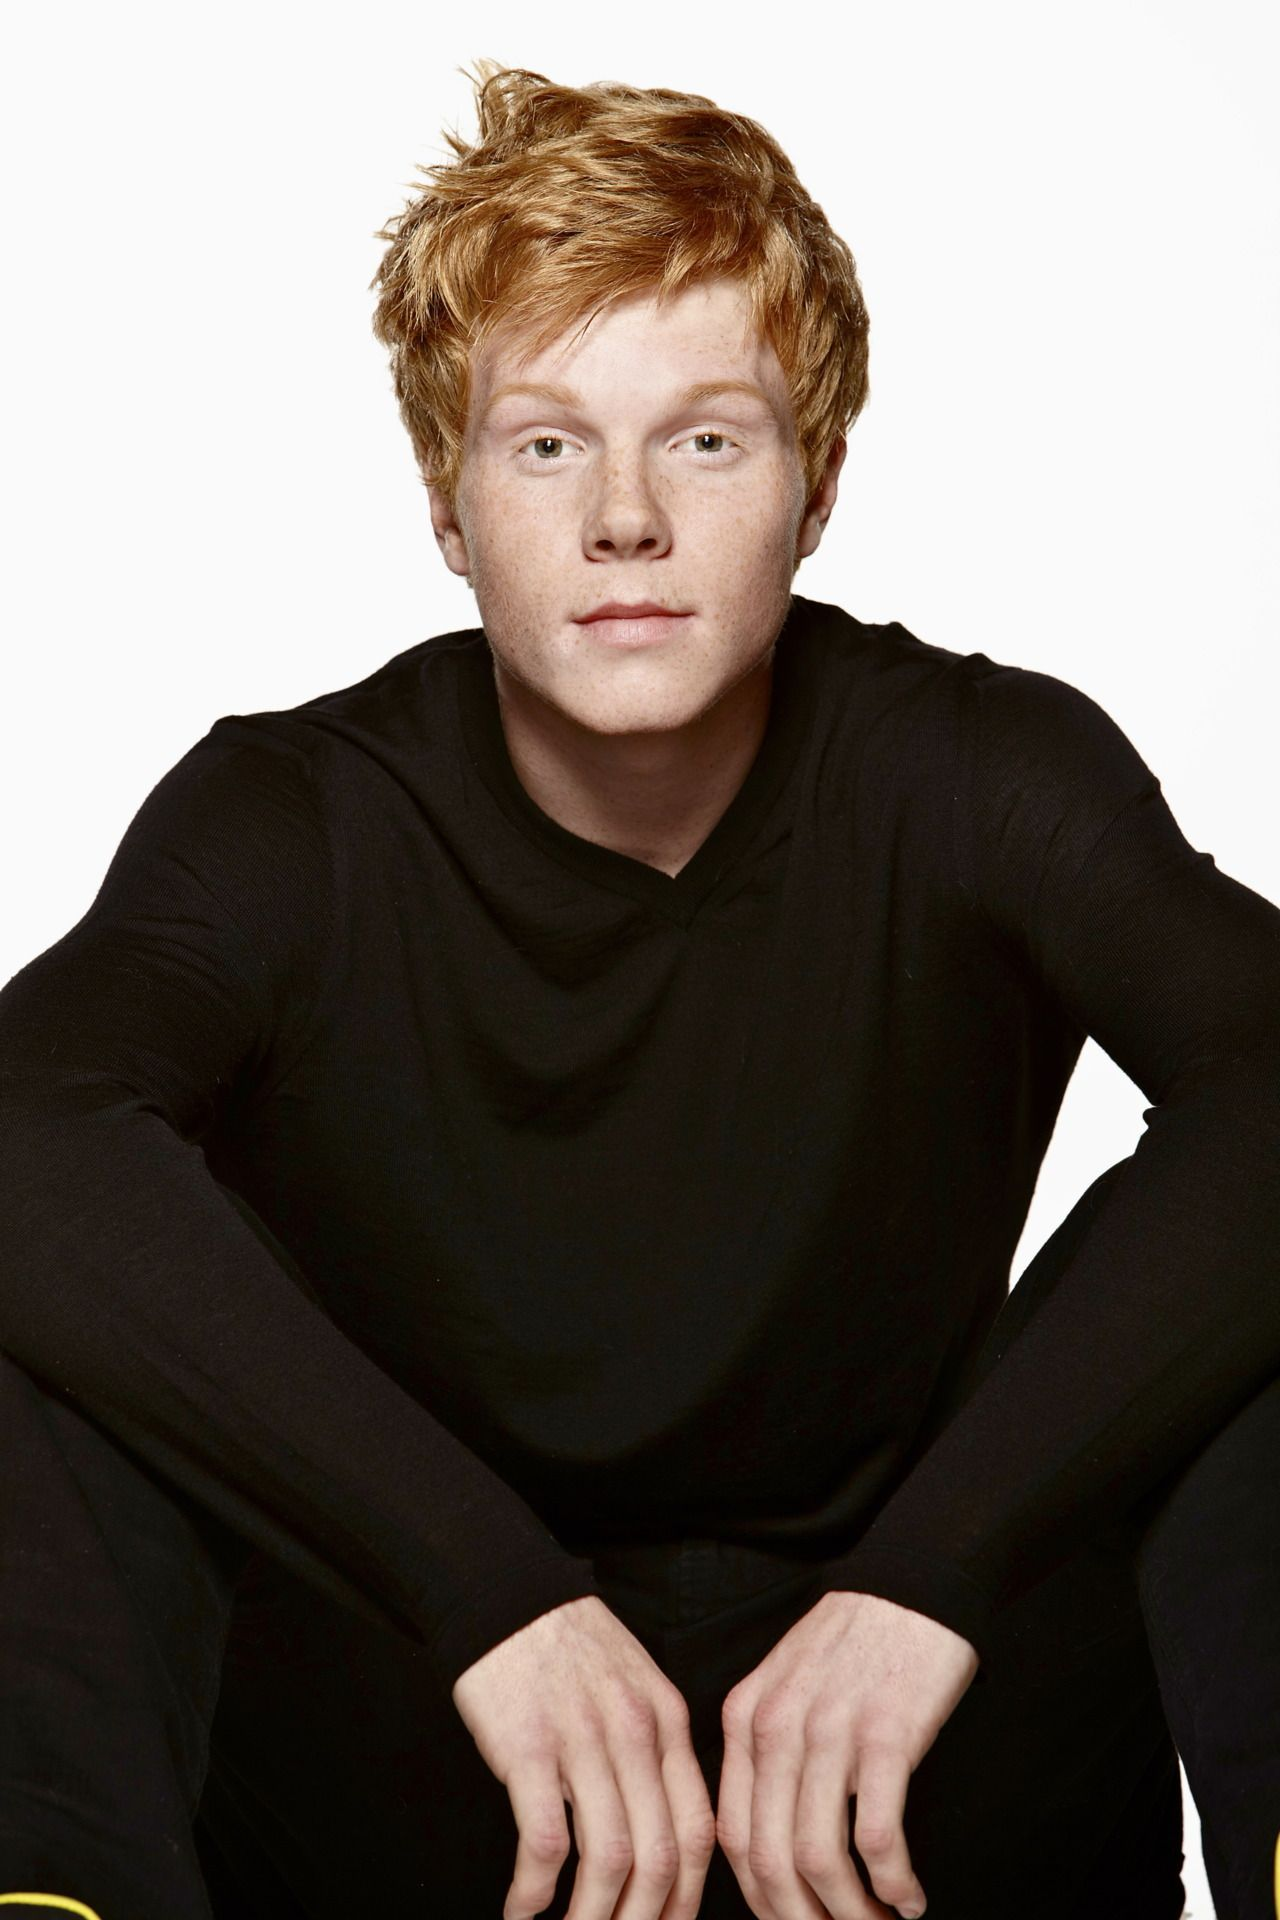 Adam hicks heus adorable and a ginger which makes him basically